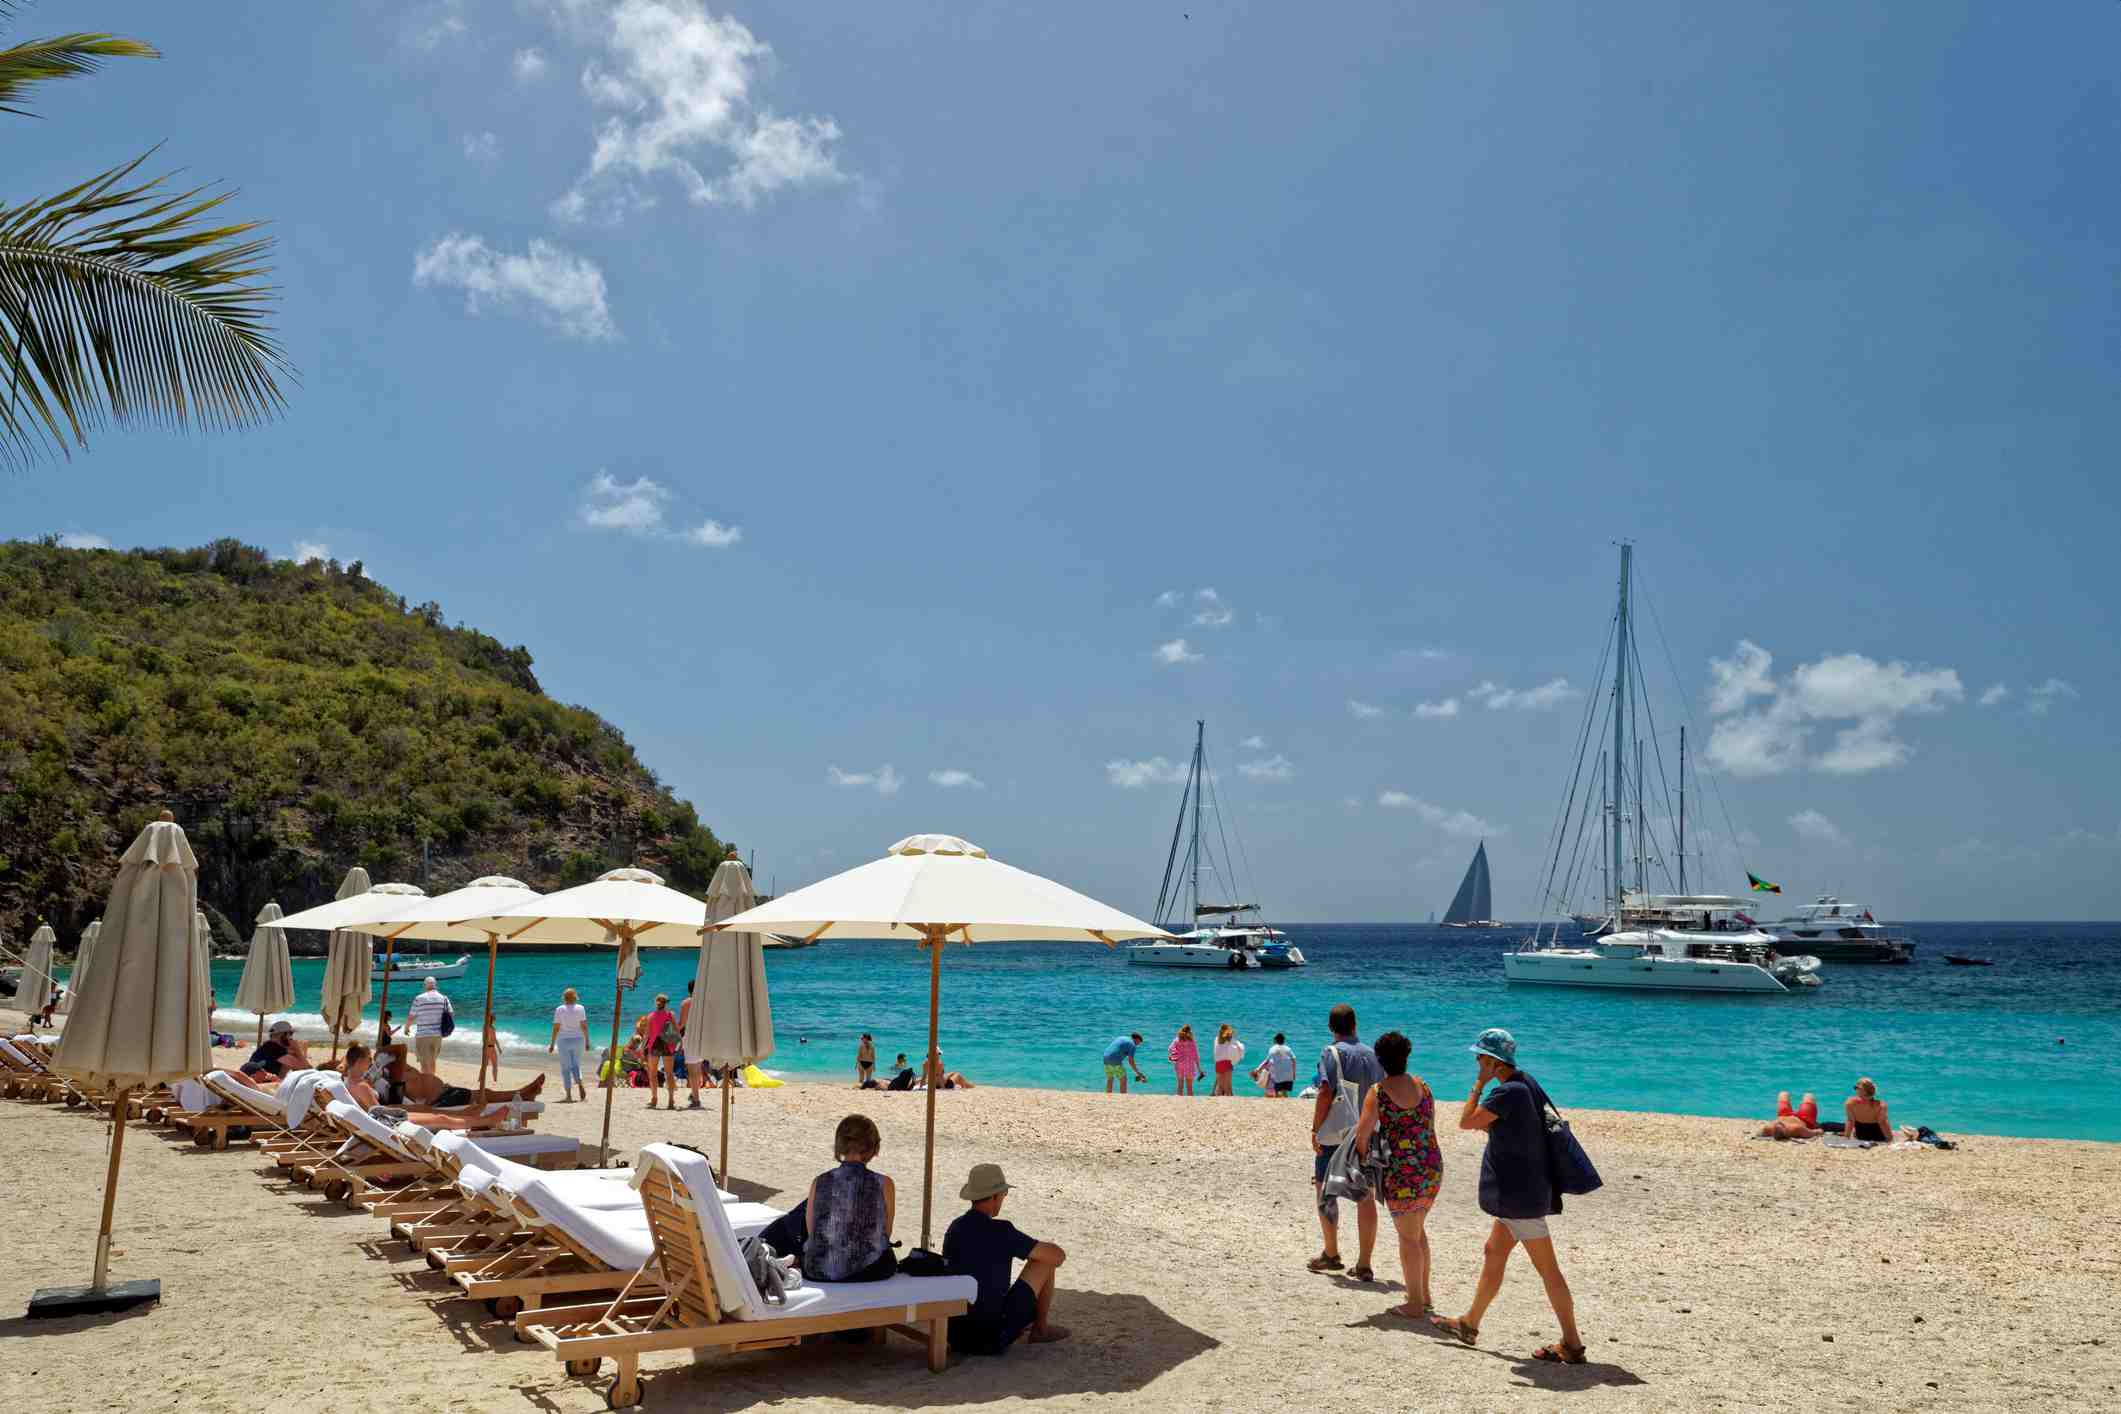 The Best Beaches of St. Barths